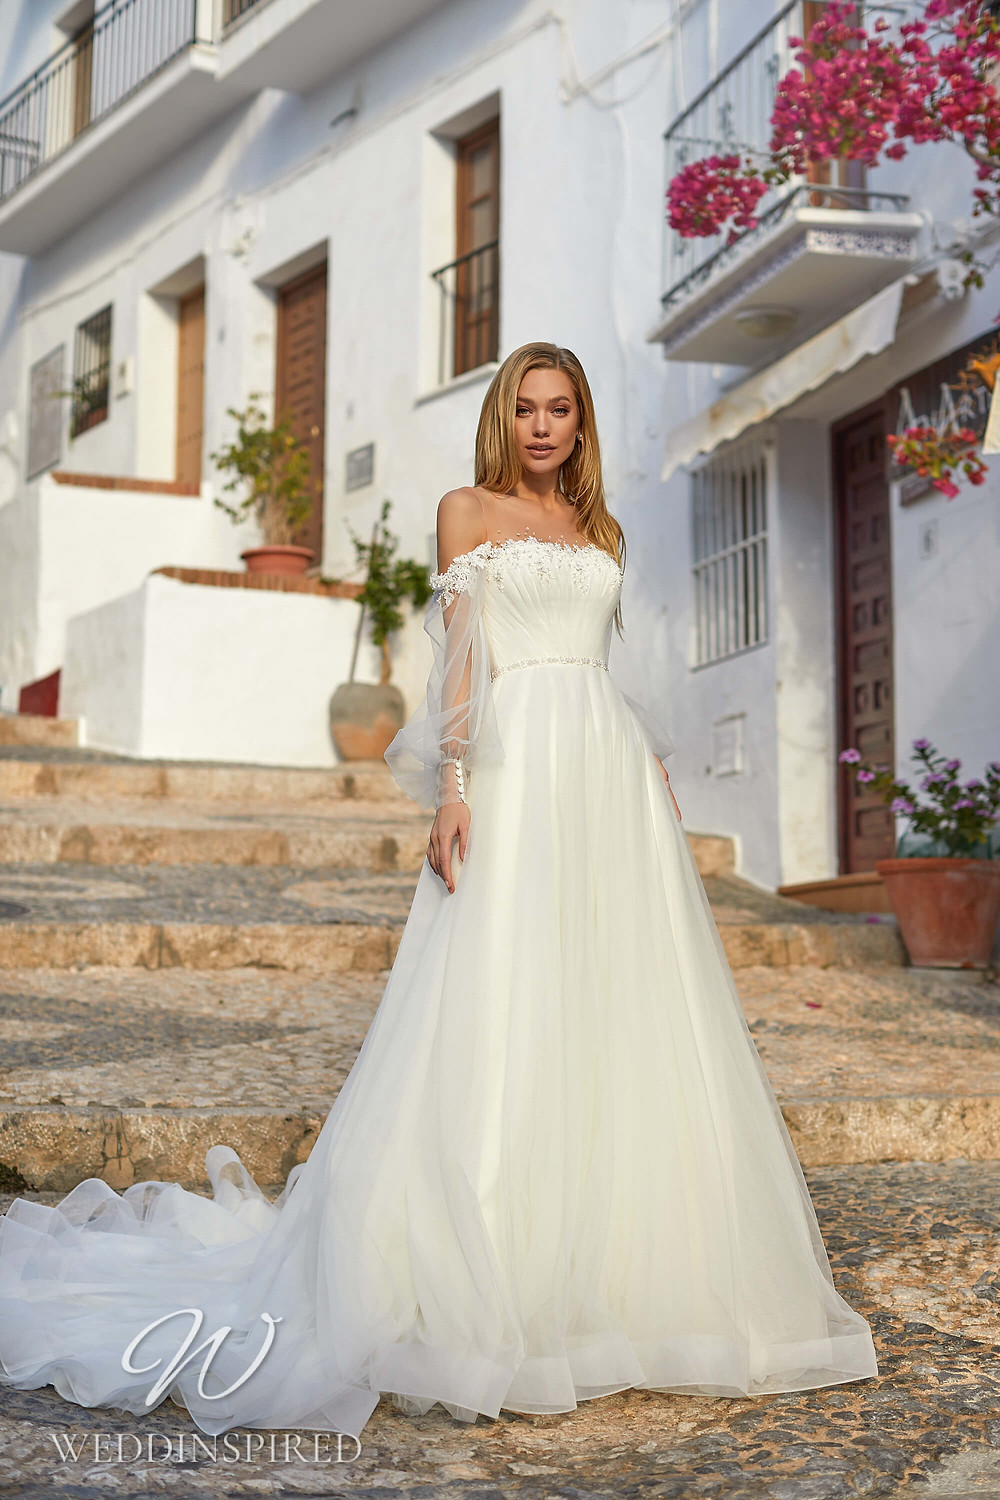 An Essential by Lussano 2021 boho tulle A-line wedding dress with long sleeves